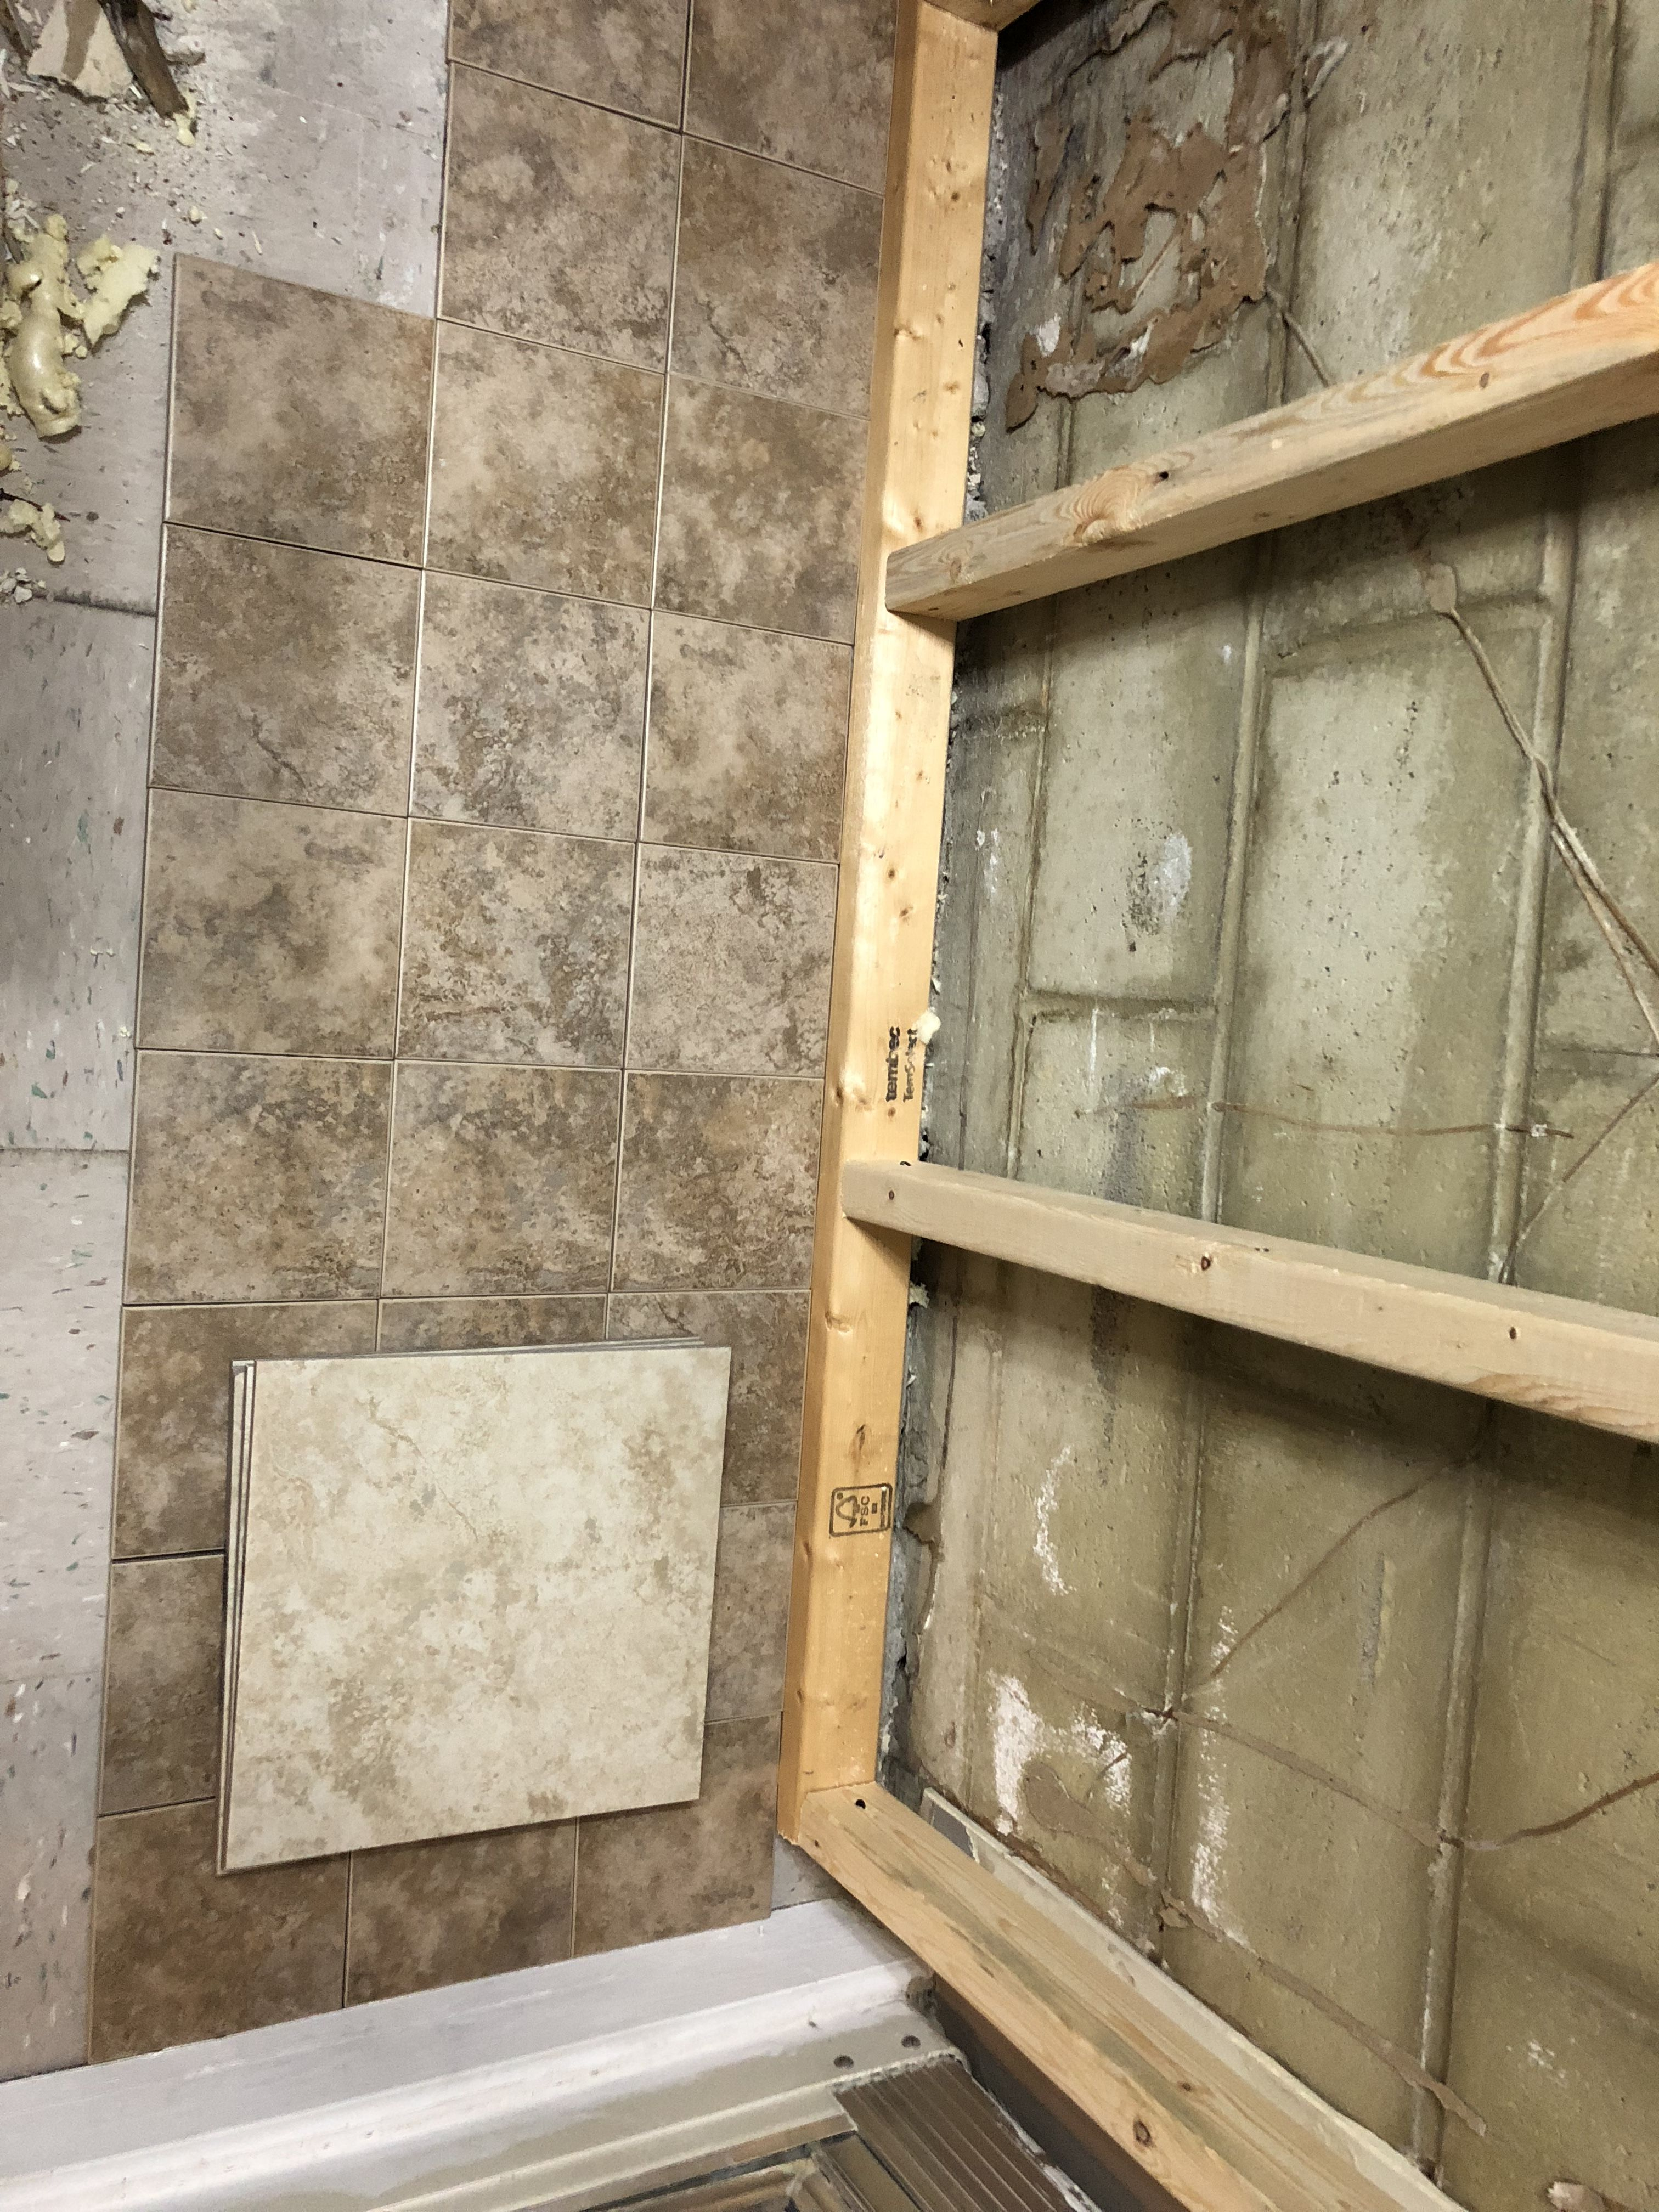 New bathroom tiles we found for cheap on clearance at Lowe